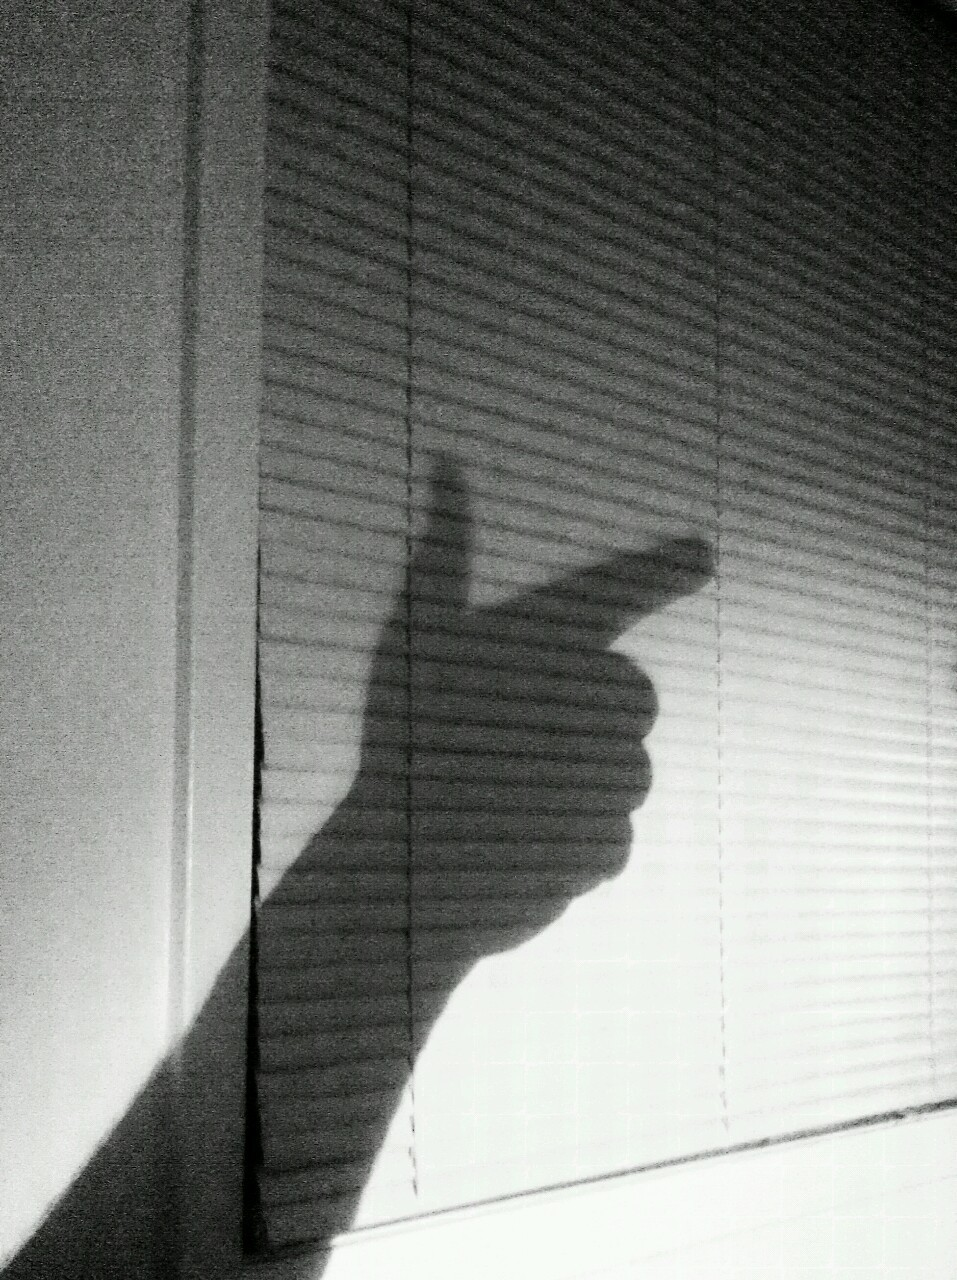 Pew pew, shadows -  Good morning, tumbl-folk.